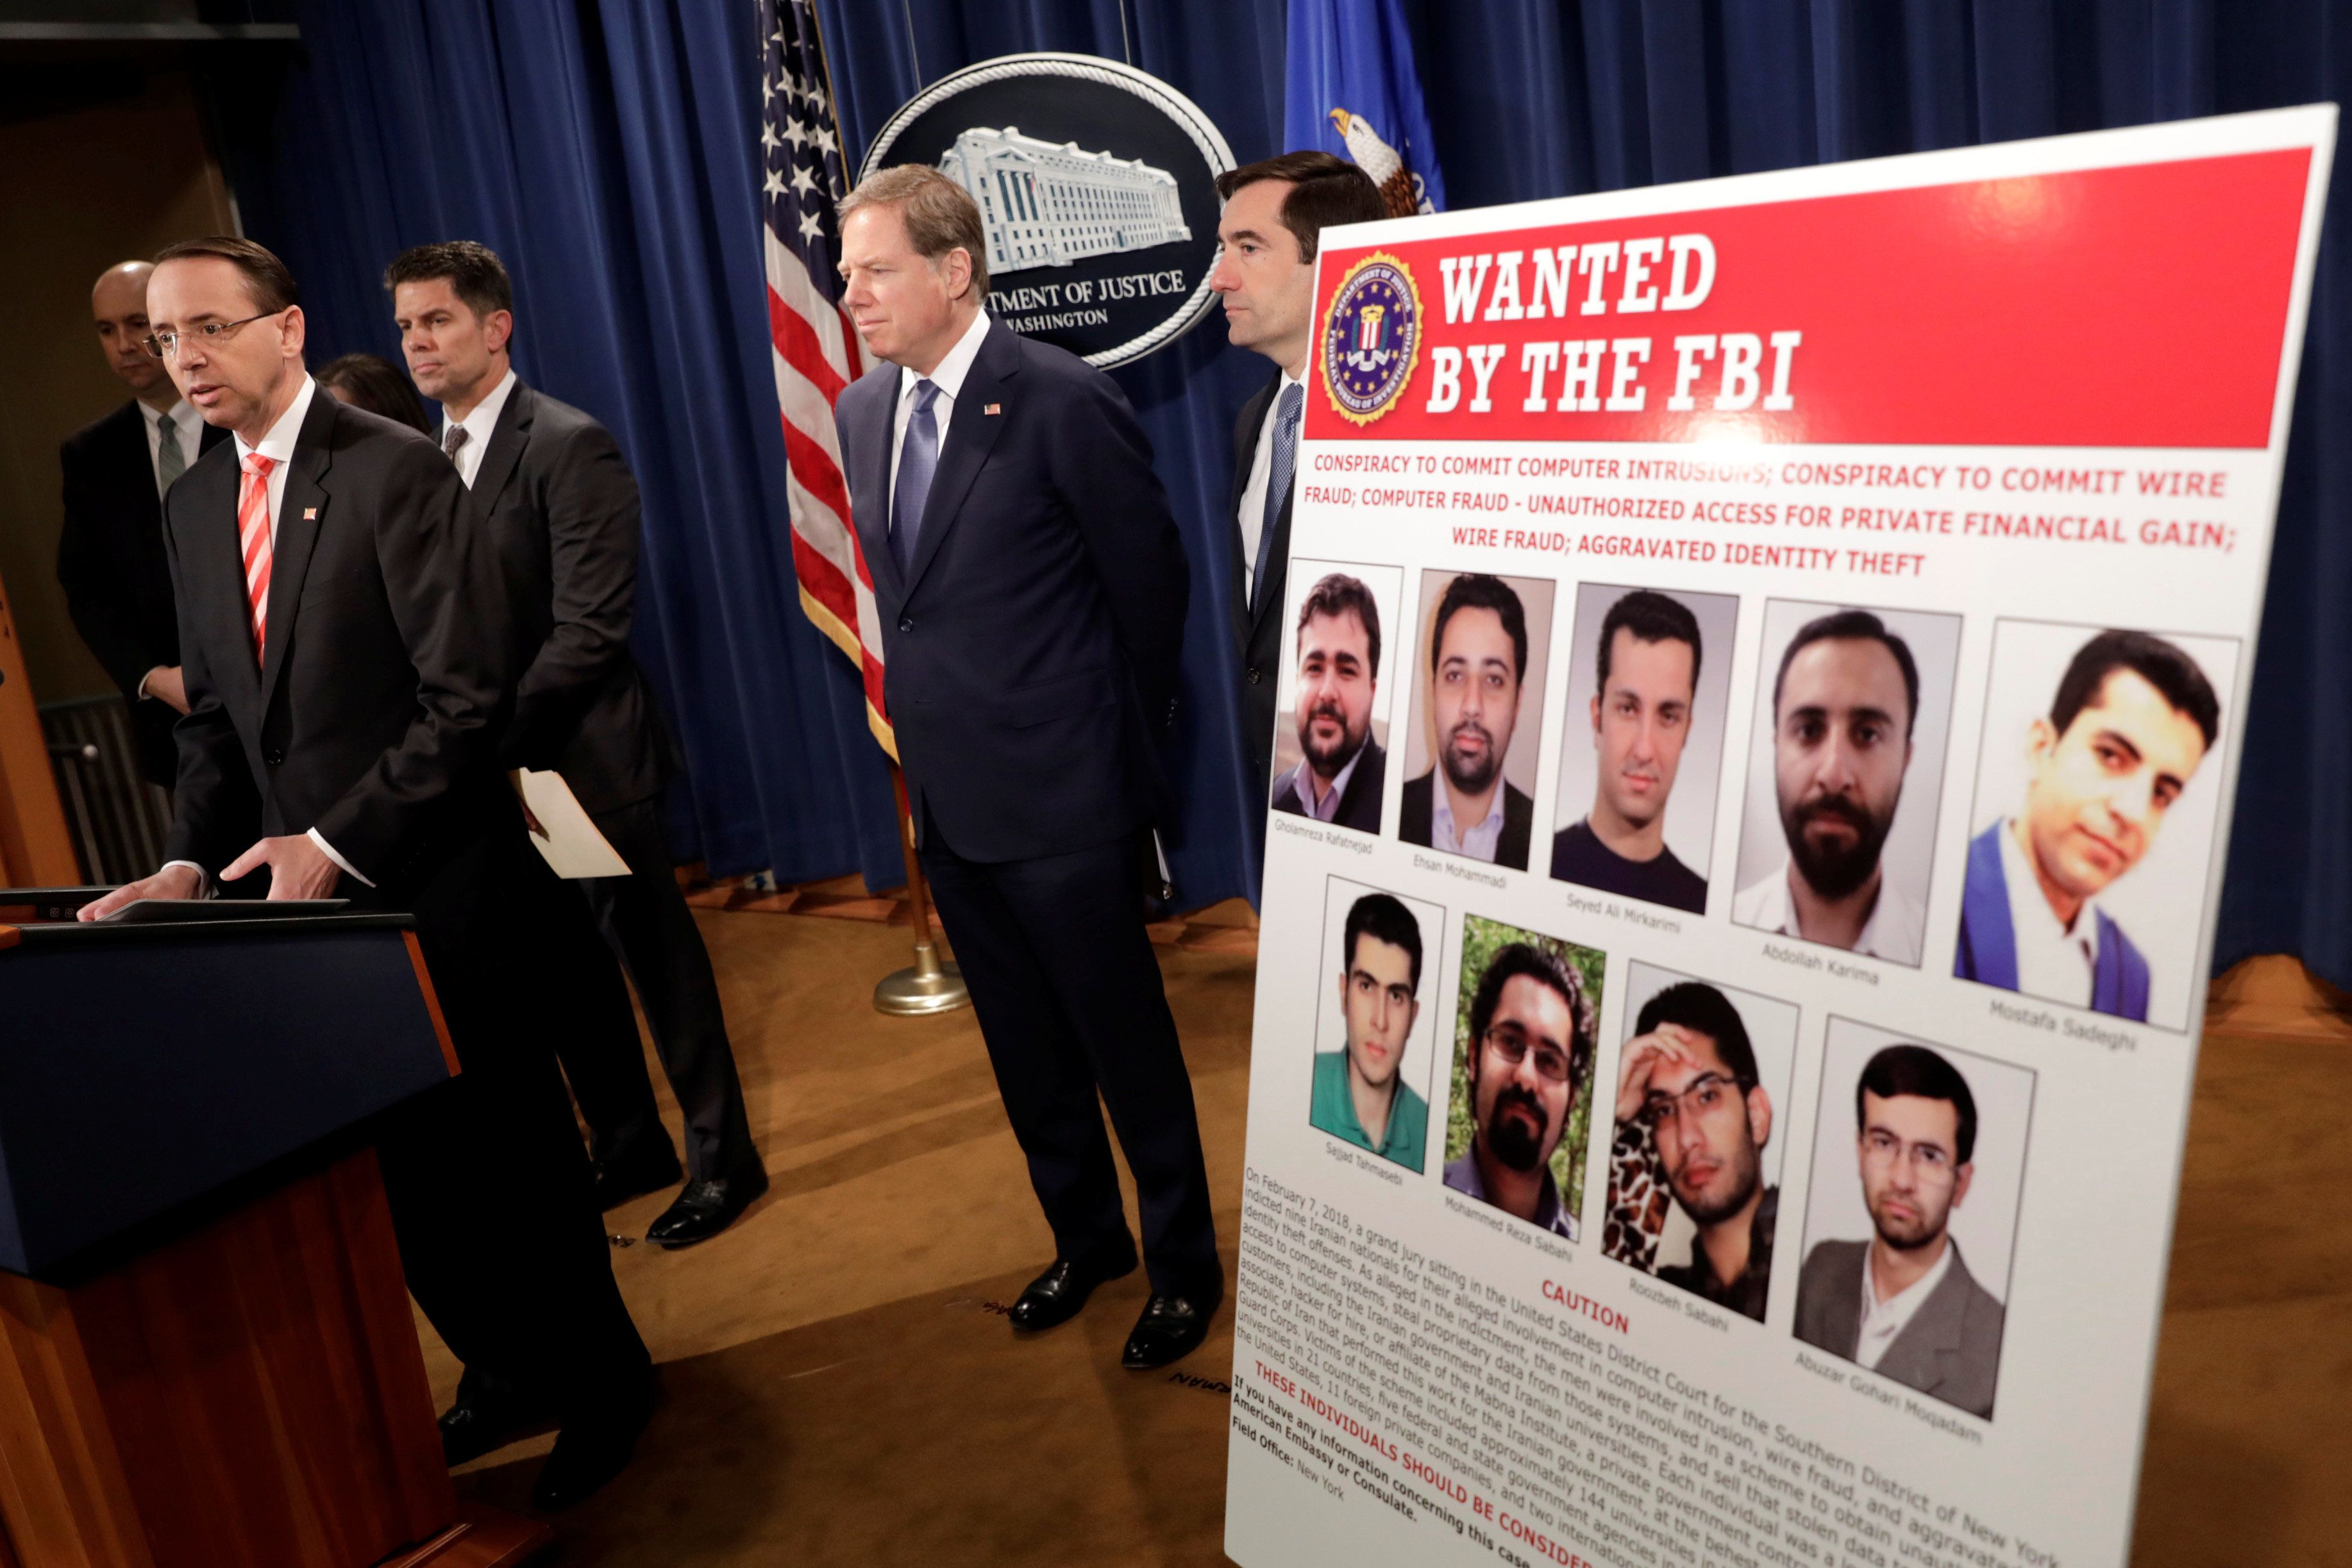 U.S. Deputy Attorney General Rod Rosenstein speaks at a news conference with other law enforcement officials at the Justice Department to announce nine Iranians charged with conducting massive cyber theft campaign, in Washington, U.S., March 23, 2018. REUTERS/Yuri Gripas